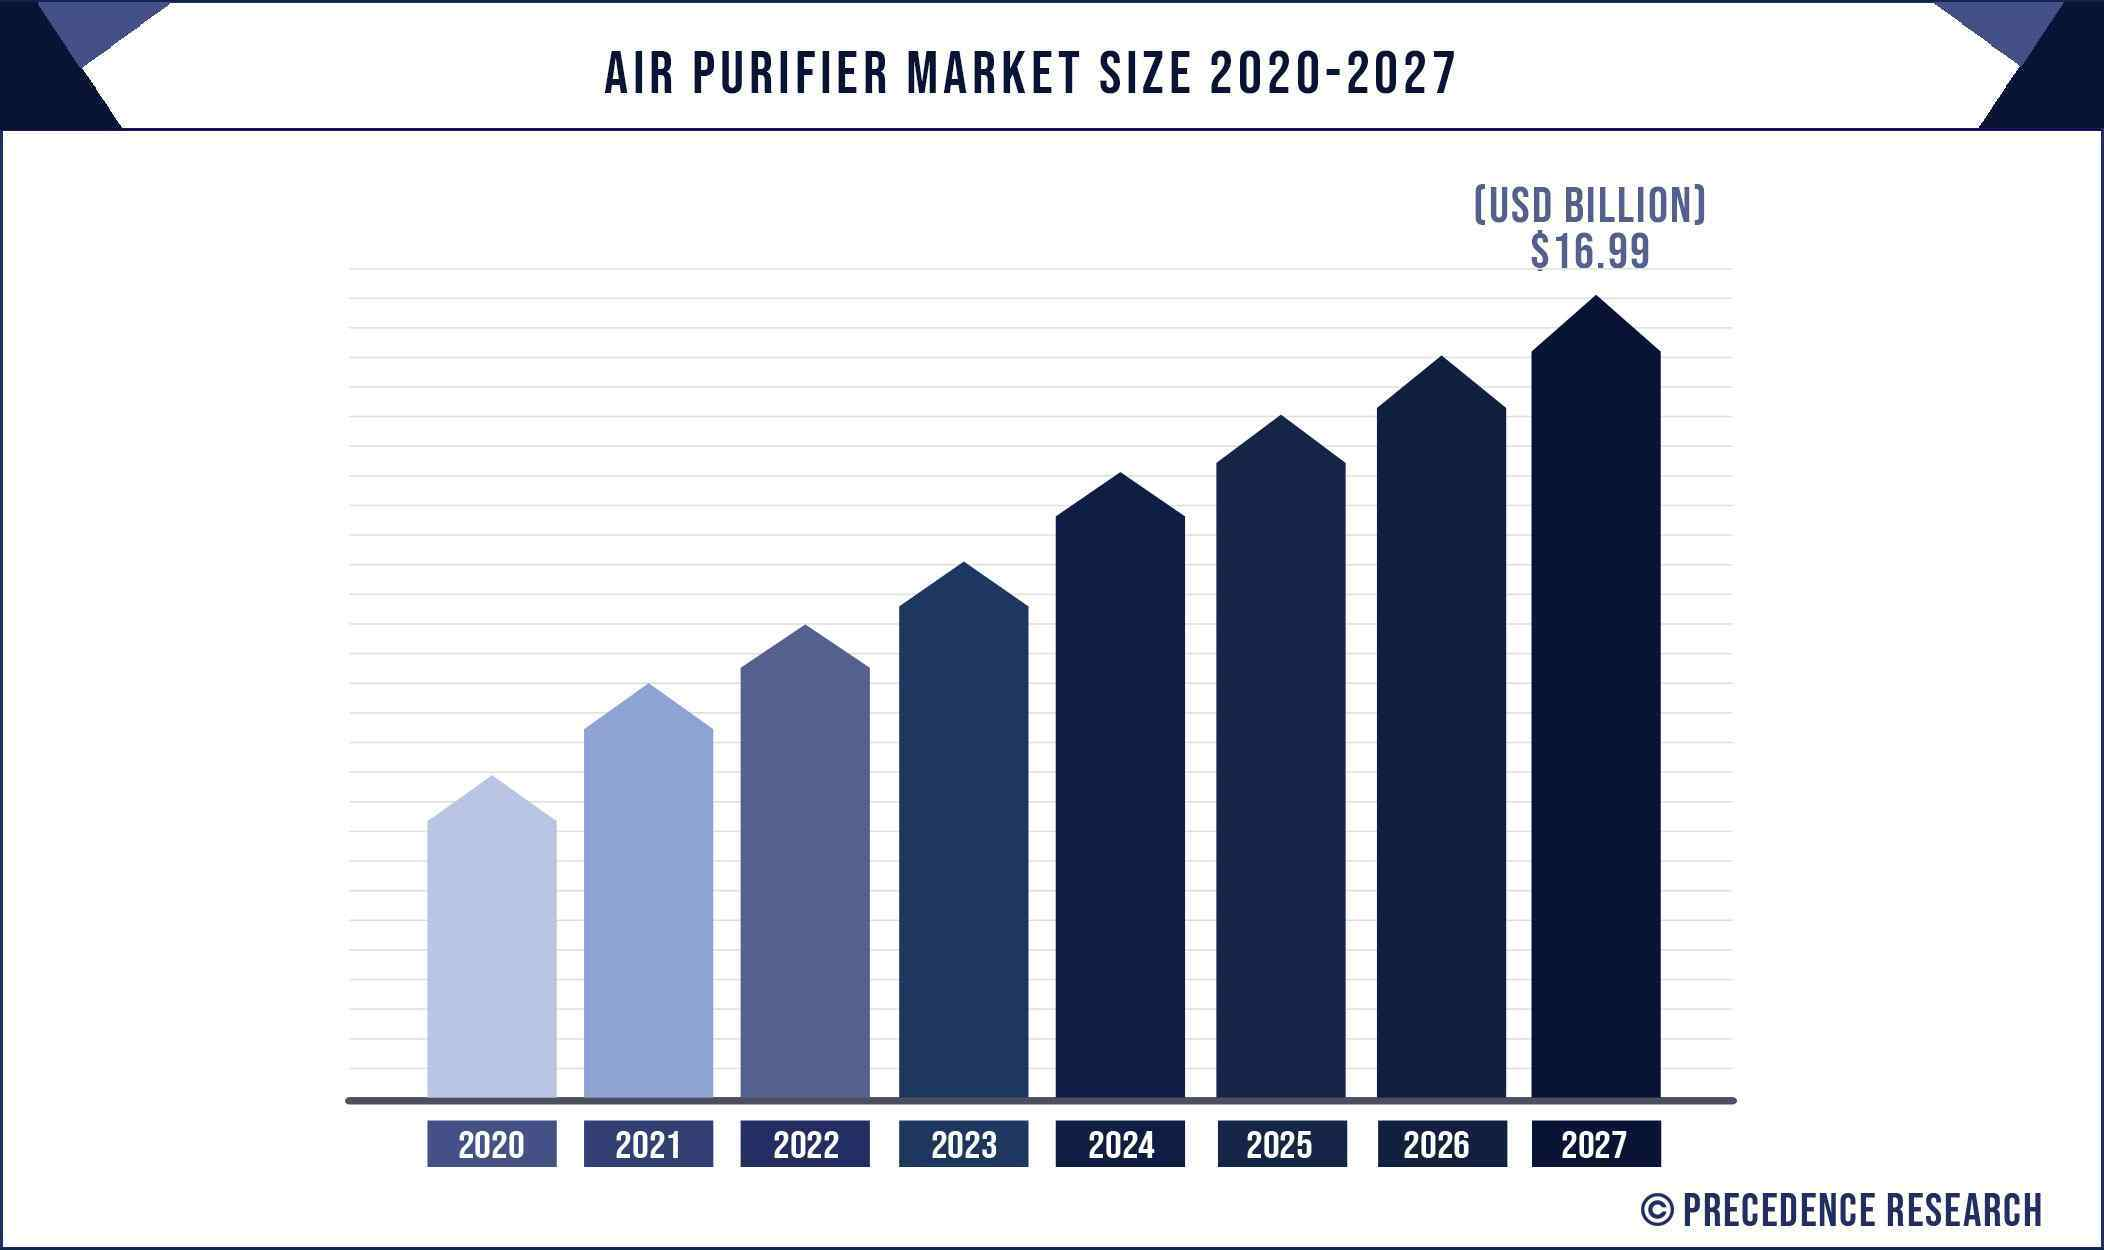 Air Purifier Market Size 2020 to 2027